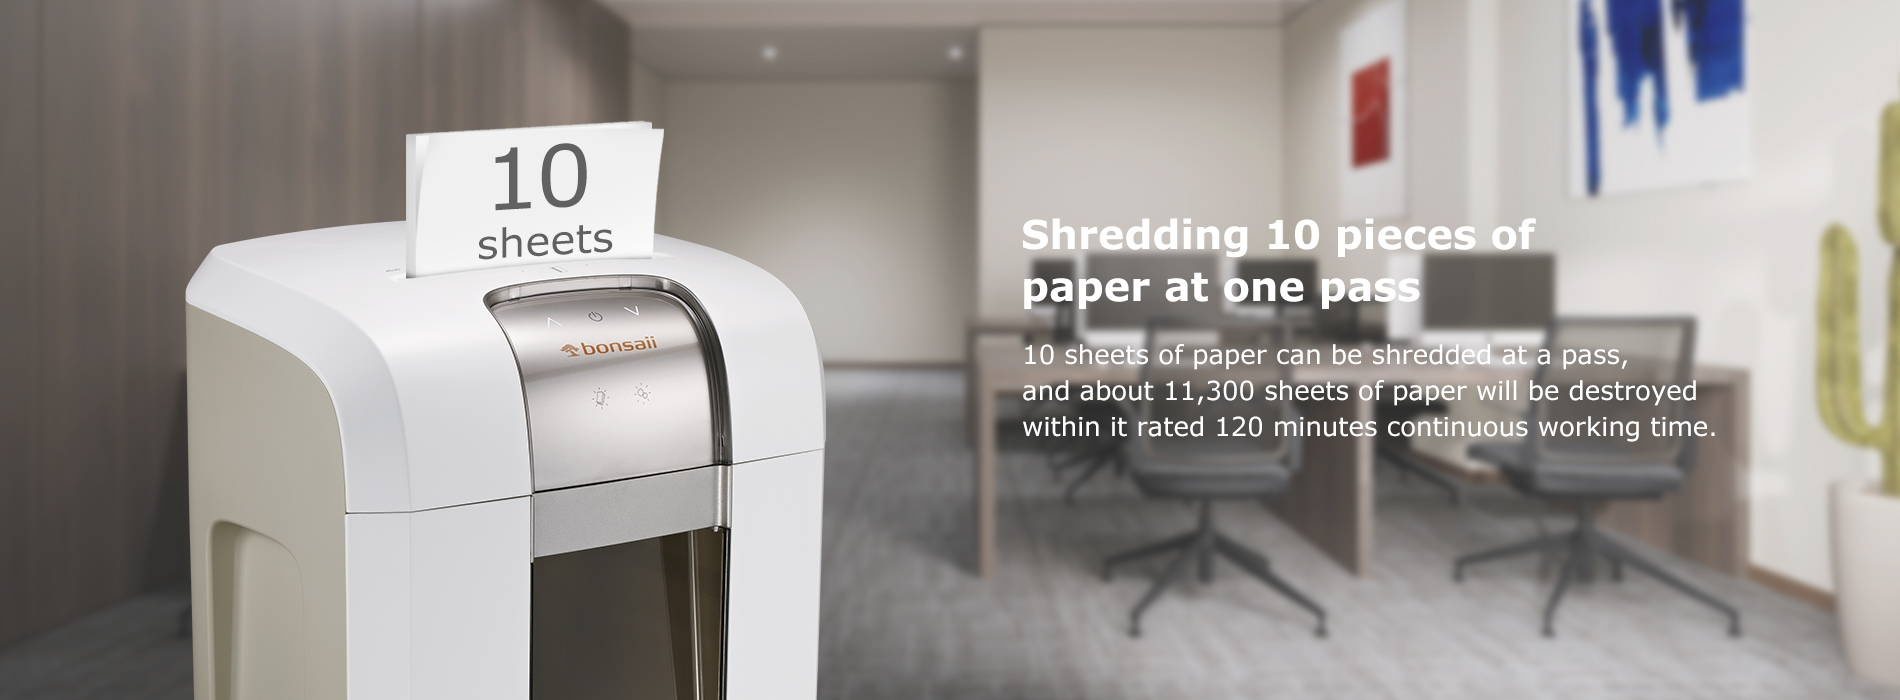 Shredding 10 pieces of paper at one pass  10 sheets of paper can be shredded at a pass, and about 11,300 sheets of paper will be destroyed within it rated 120 minutes continuous working time.